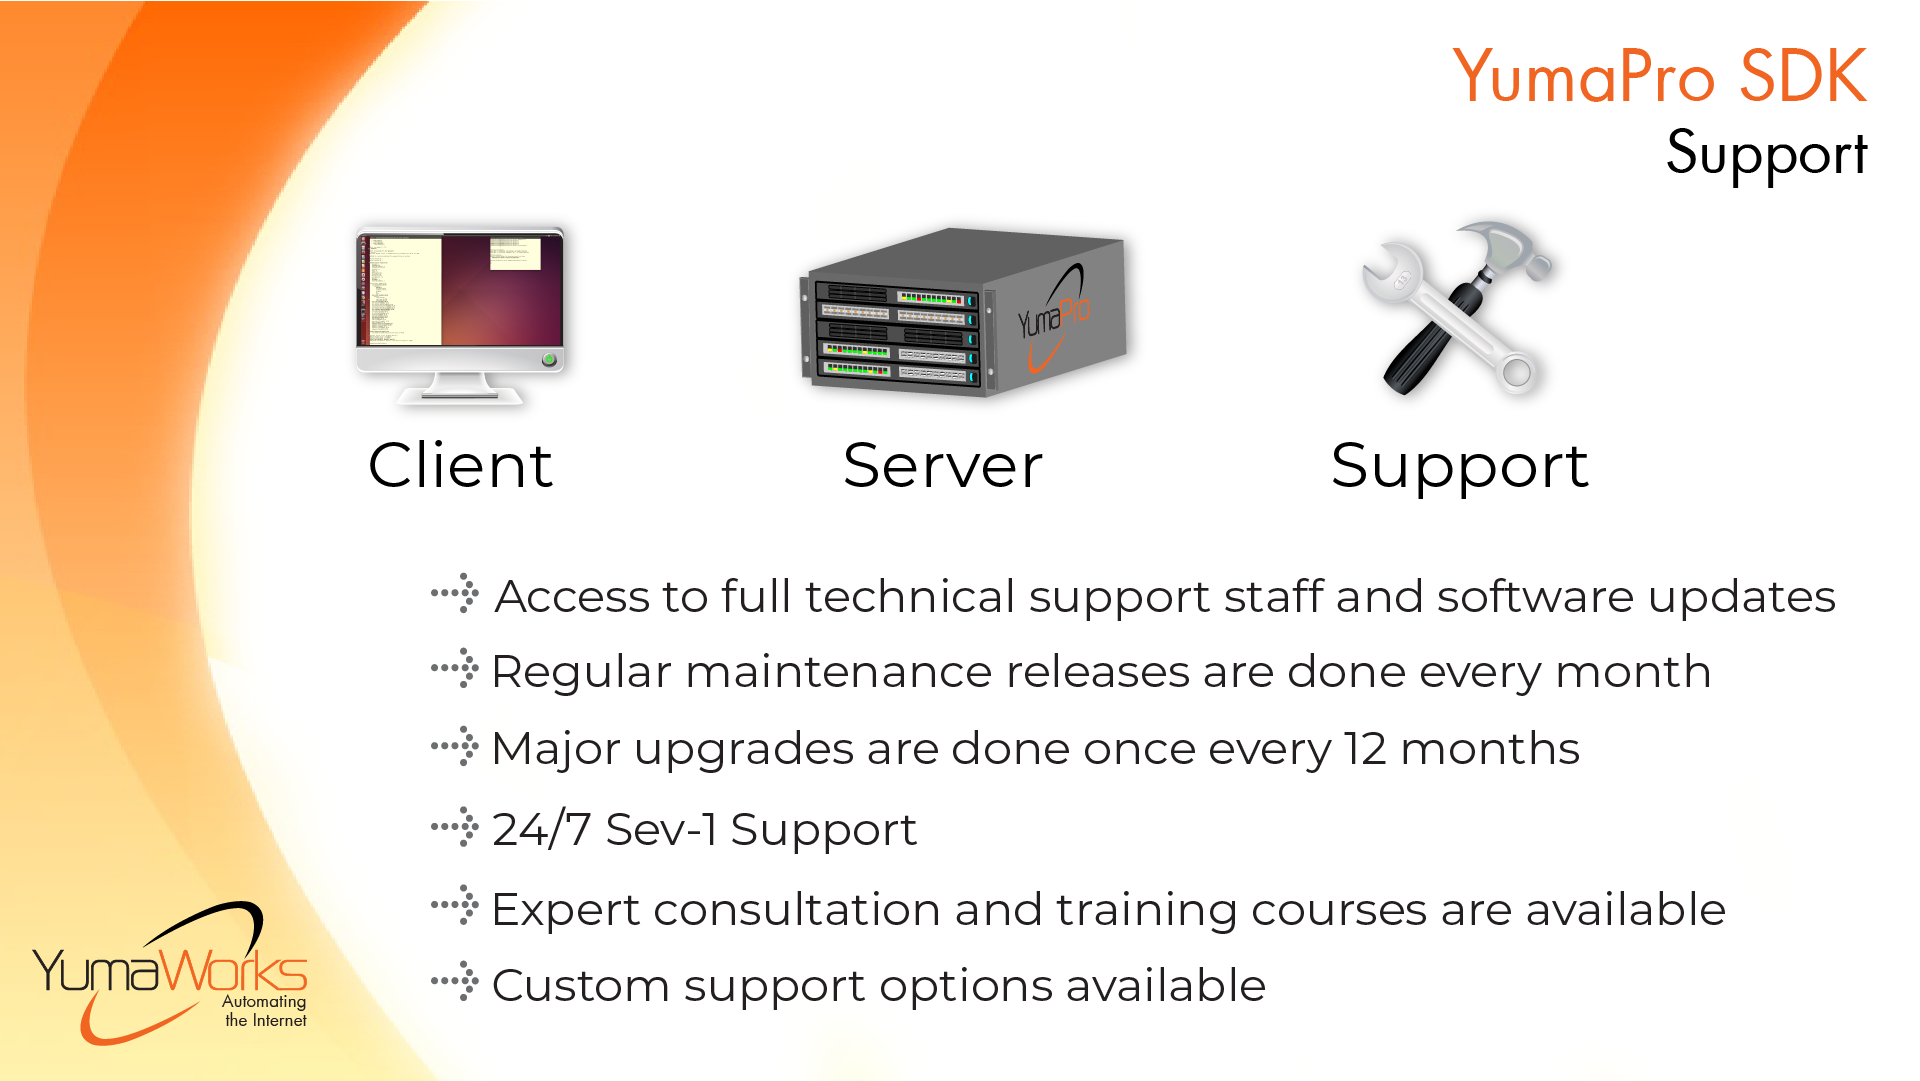 YumaPro SDK Support and Licensing features: Access to full technical staff and monthly software updates; major upgrades once every 12 months; 24/7 Sev-1 Support; Expert consultation and training courses are available; Custom support options available